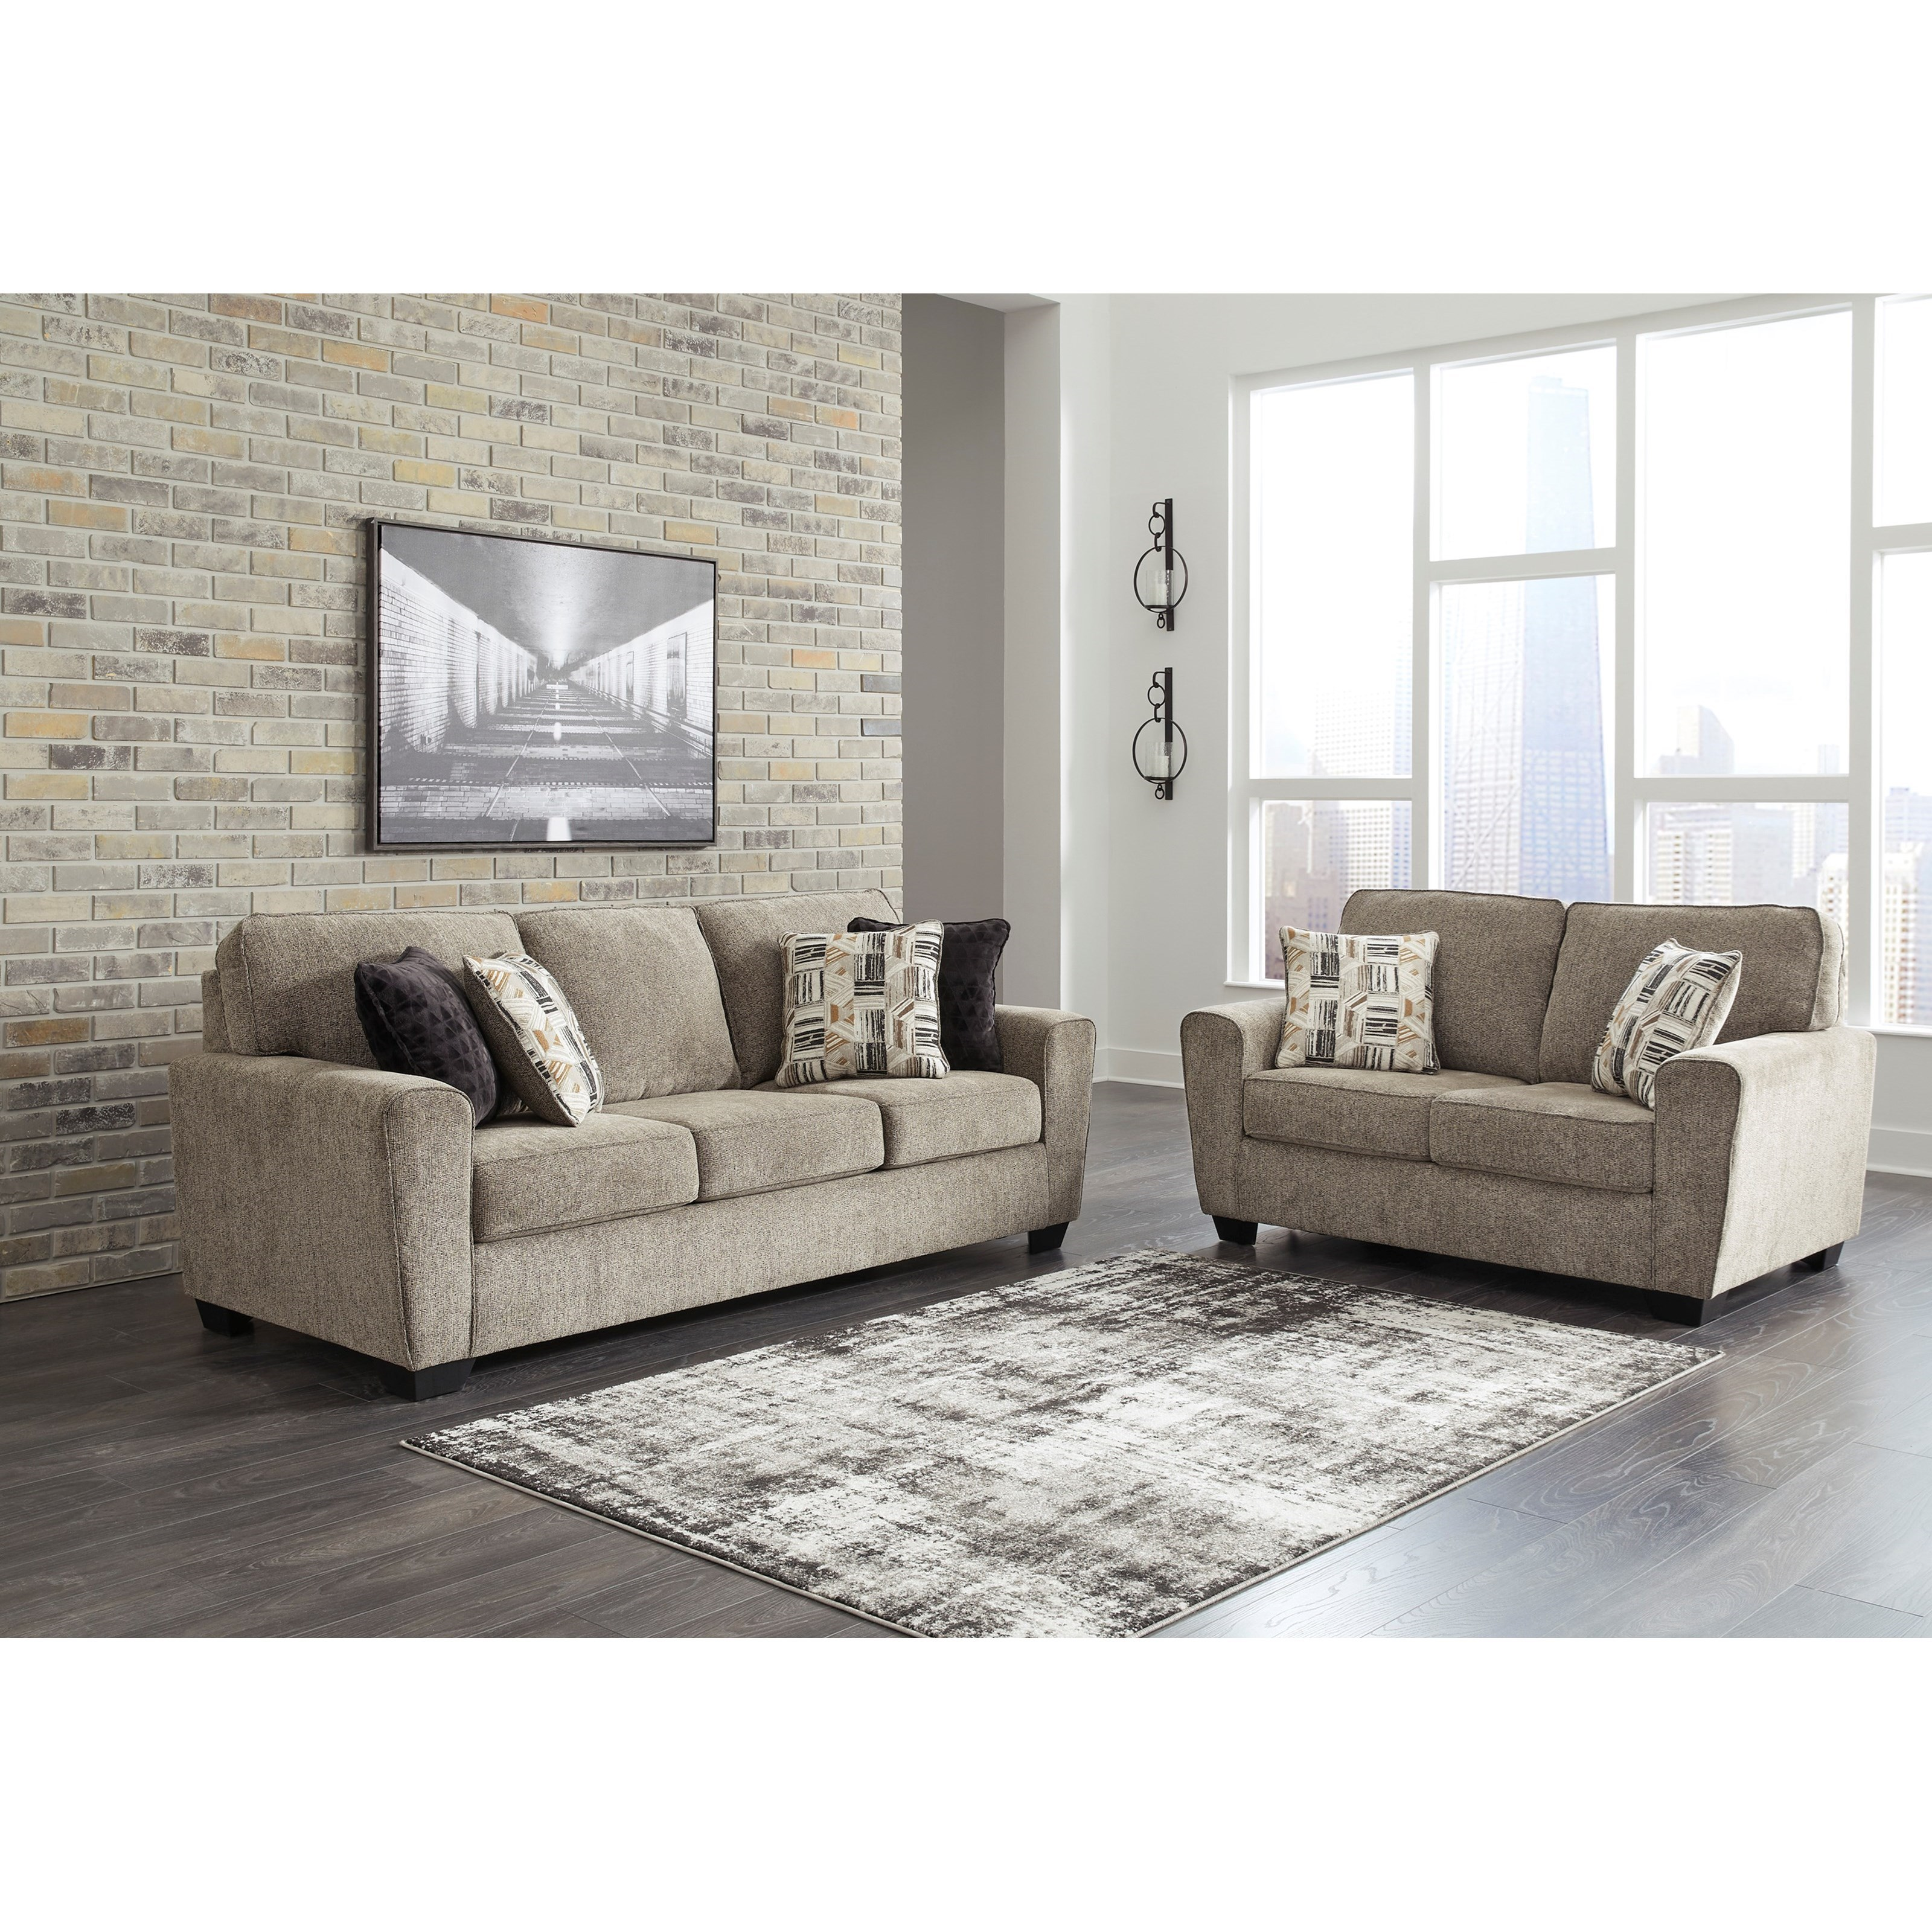 McCluer Living Room Group by Benchcraft at Miller Waldrop Furniture and Decor